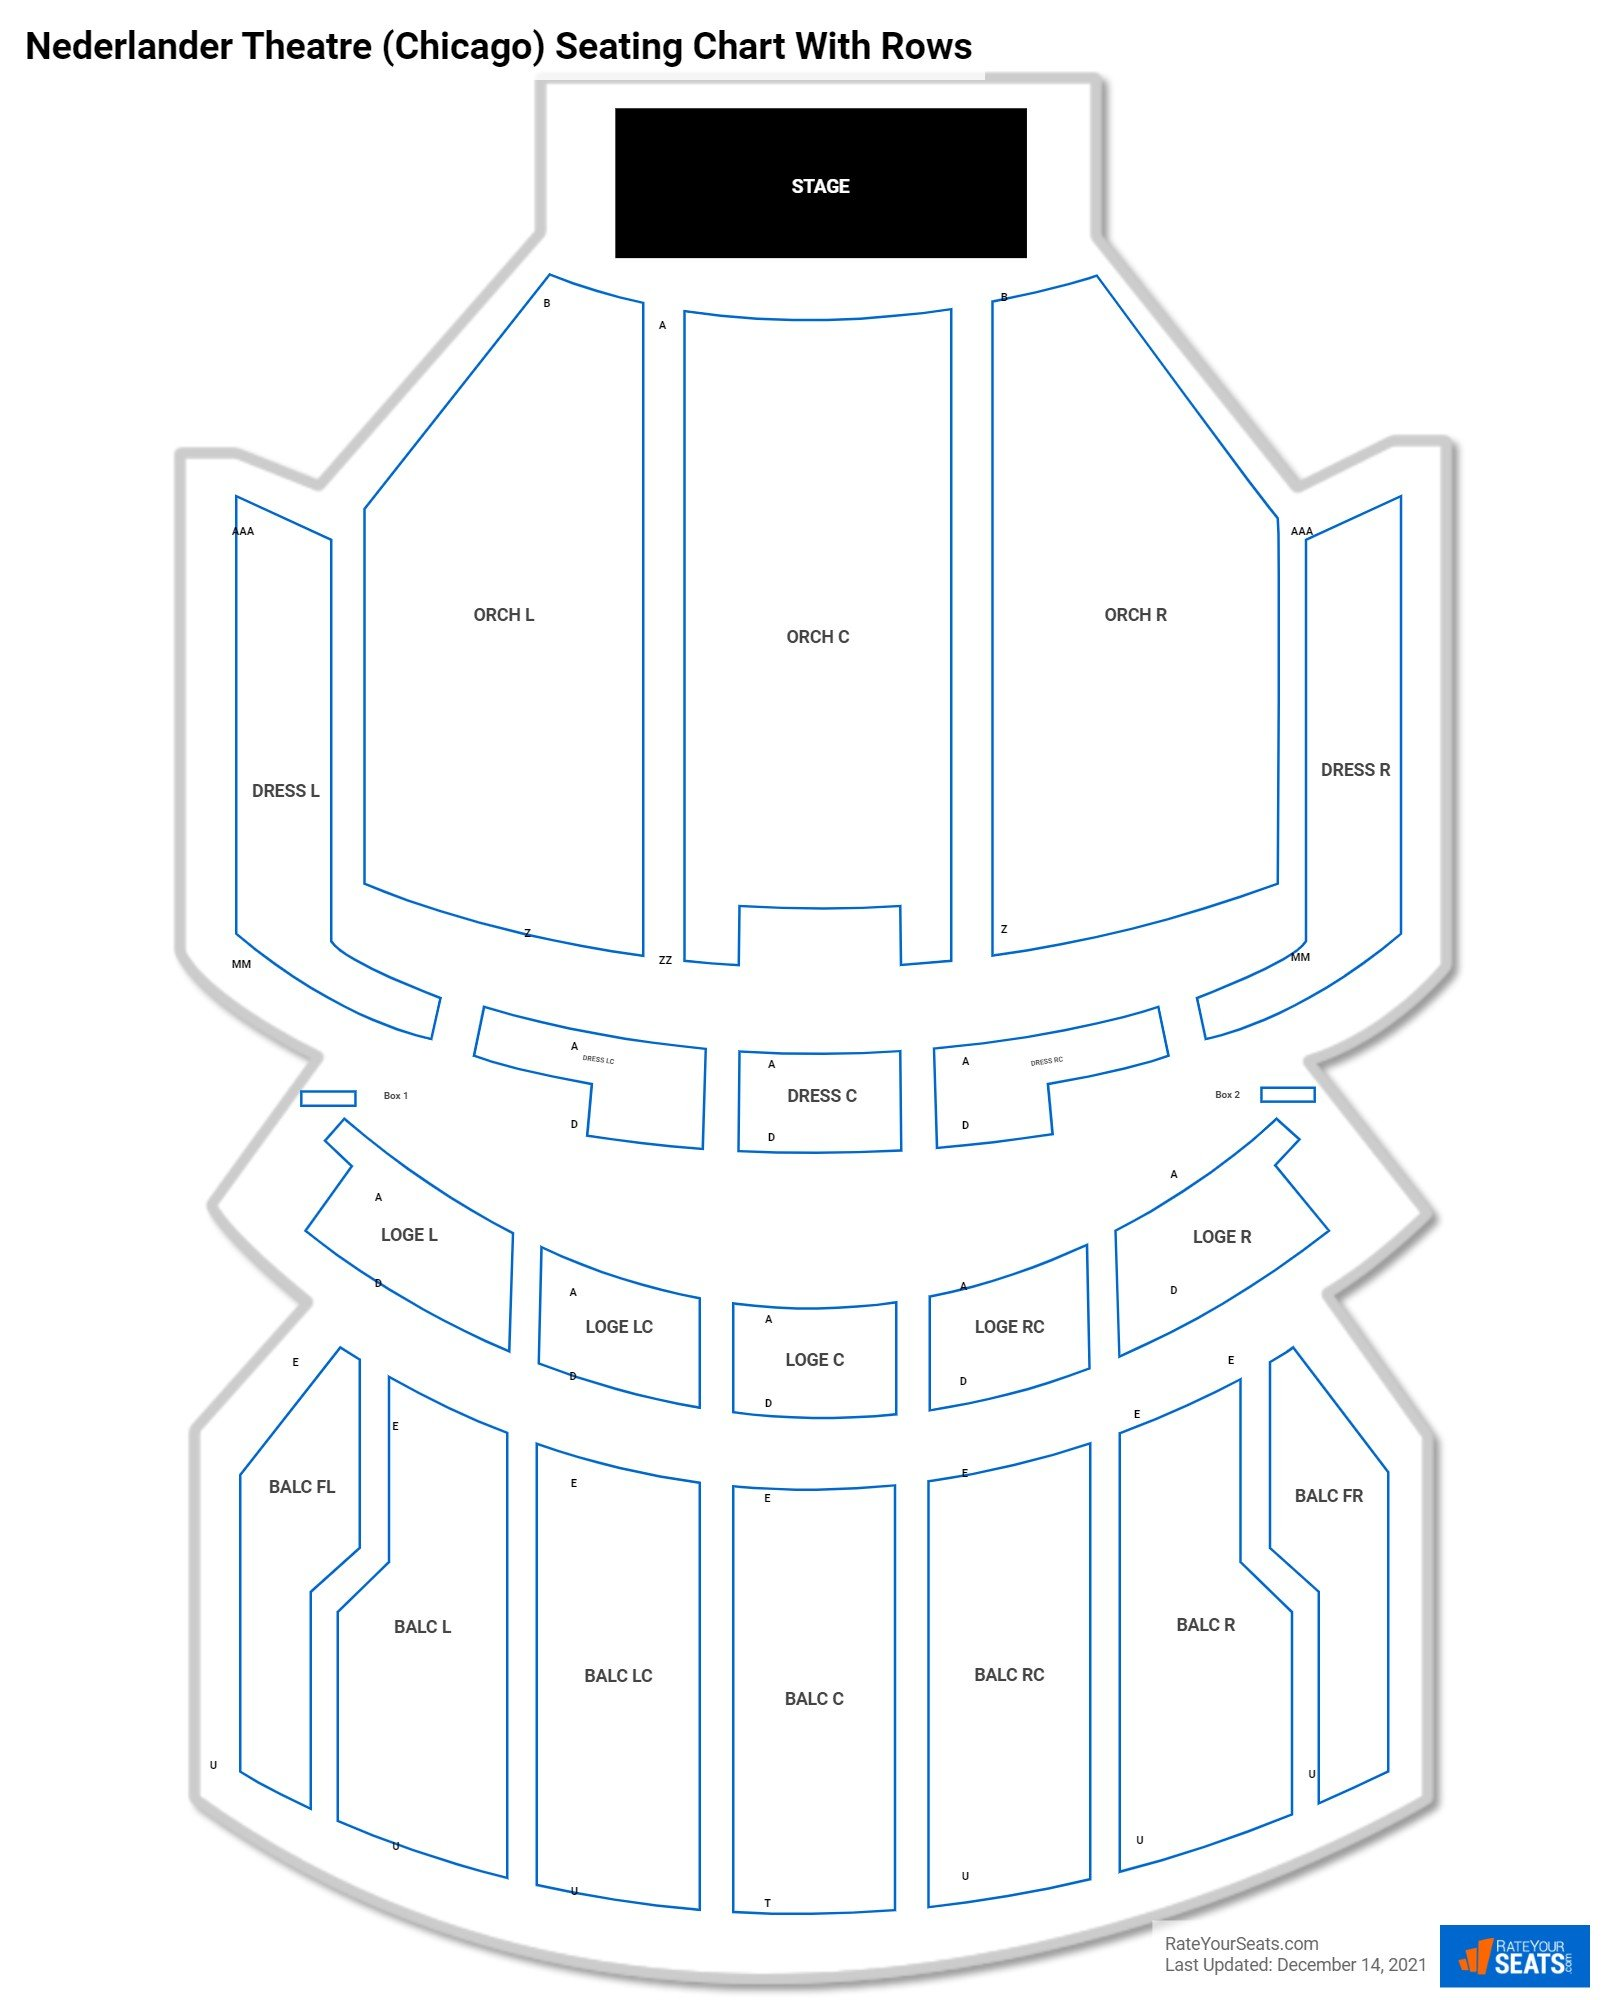 Nederlander Theatre seating chart with rows